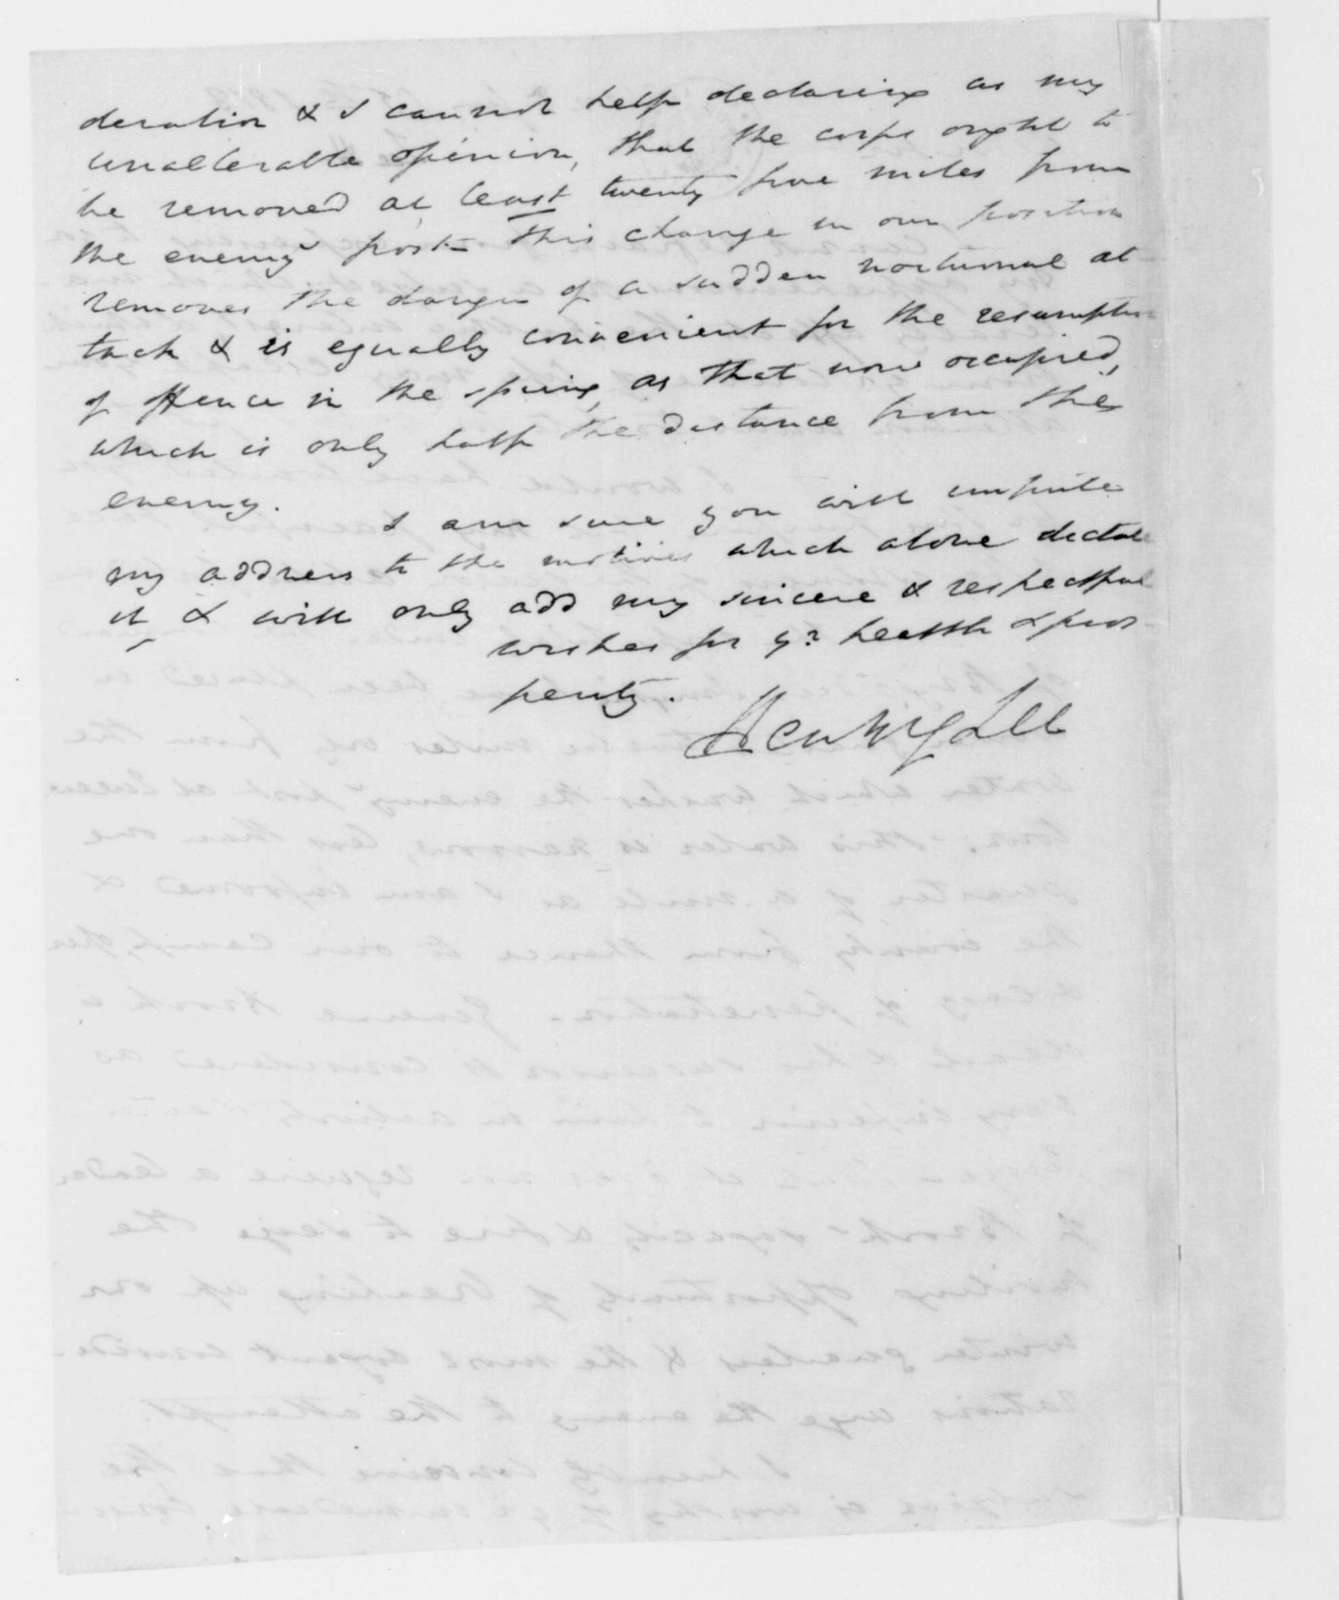 Henry Lee to James Madison, January 15, 1813.